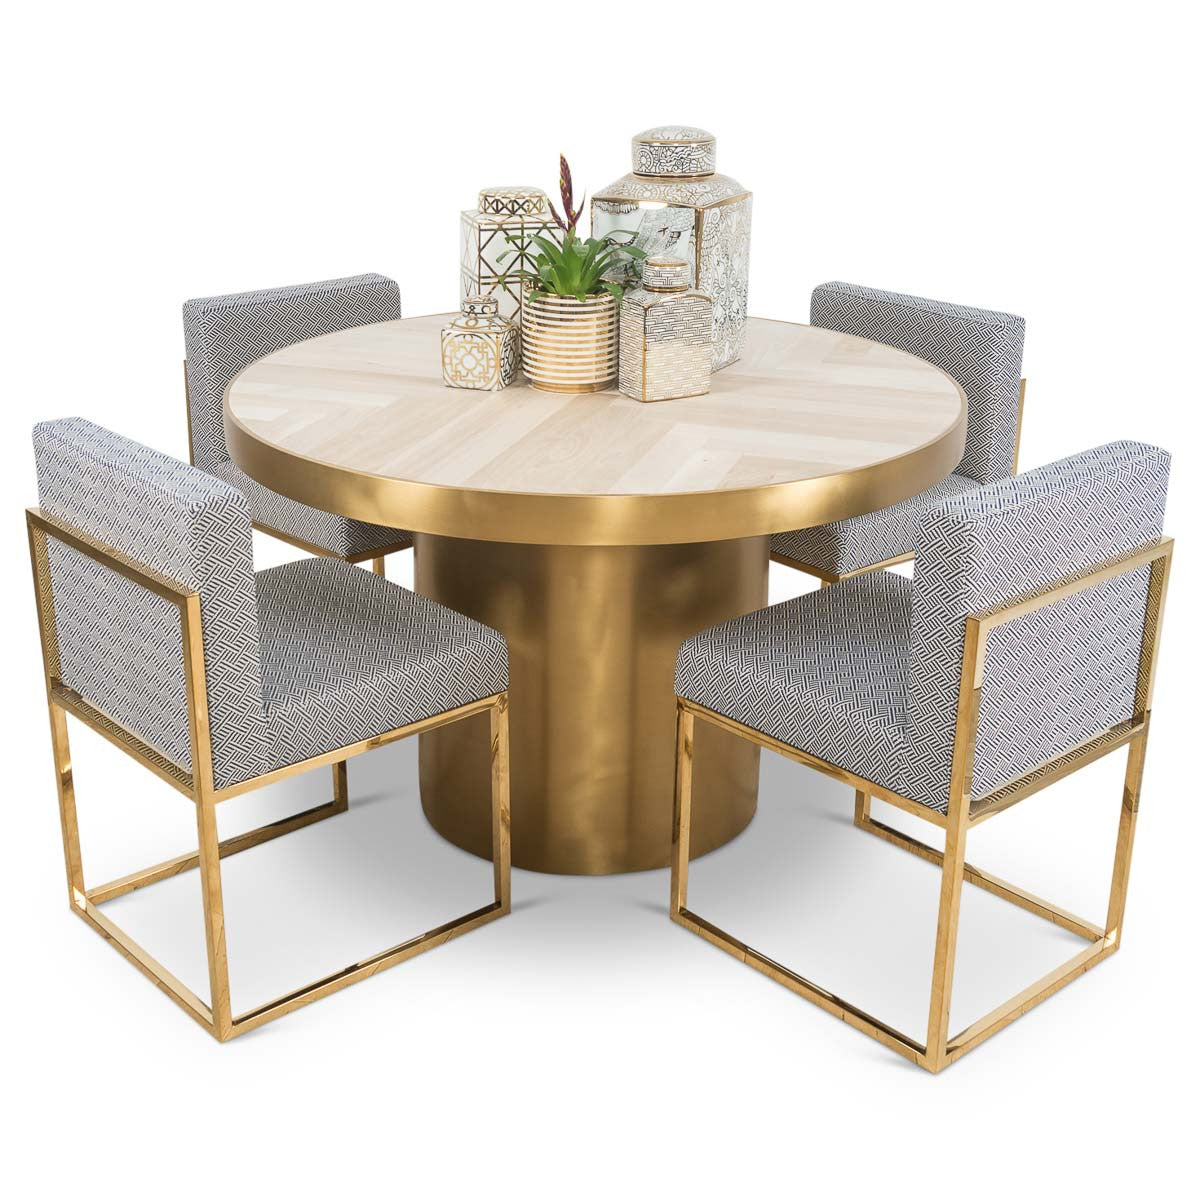 Round Dining Table For 2 Part - 24: Amalfi 2 Round Dining Table